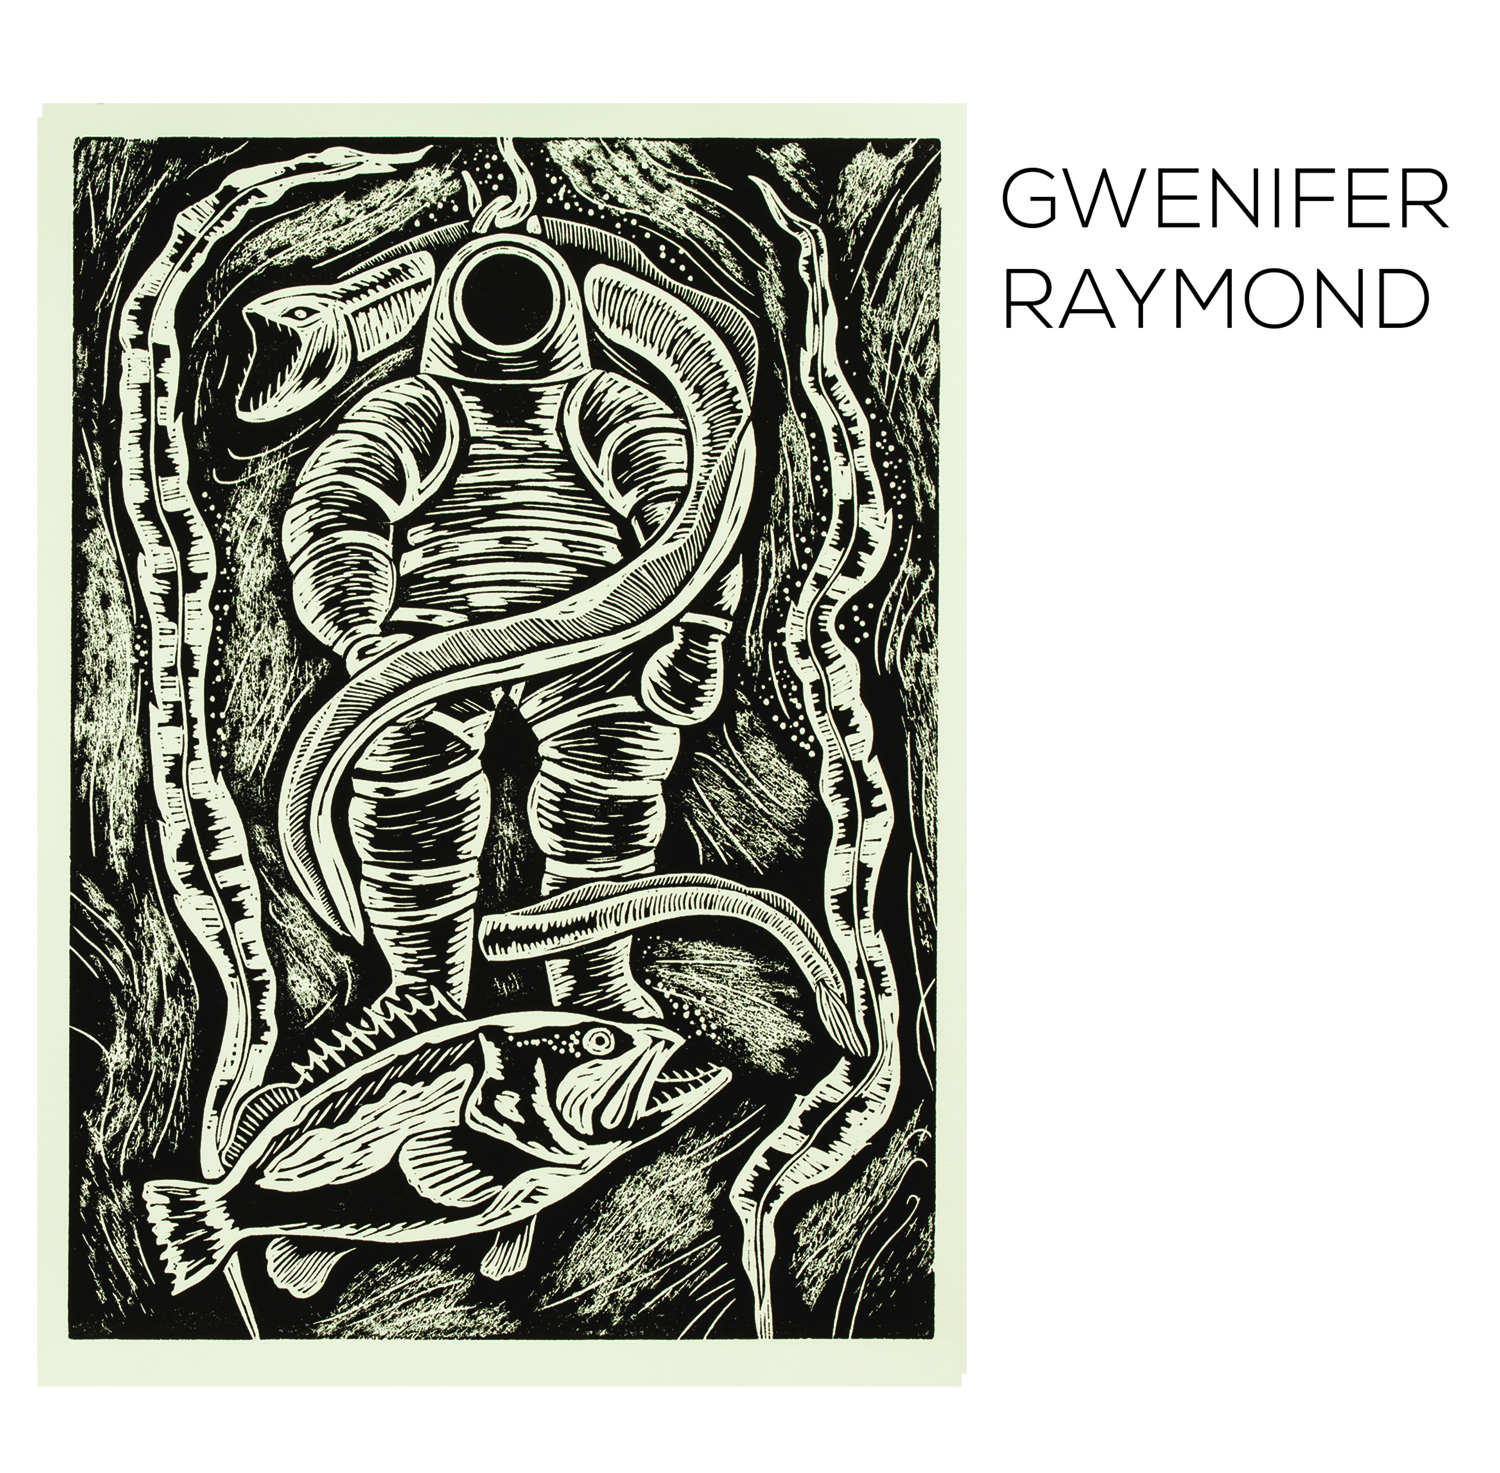 Gwenifer Raymond - Deep Sea Diver / Bleeding Finger Blues 7 Inch